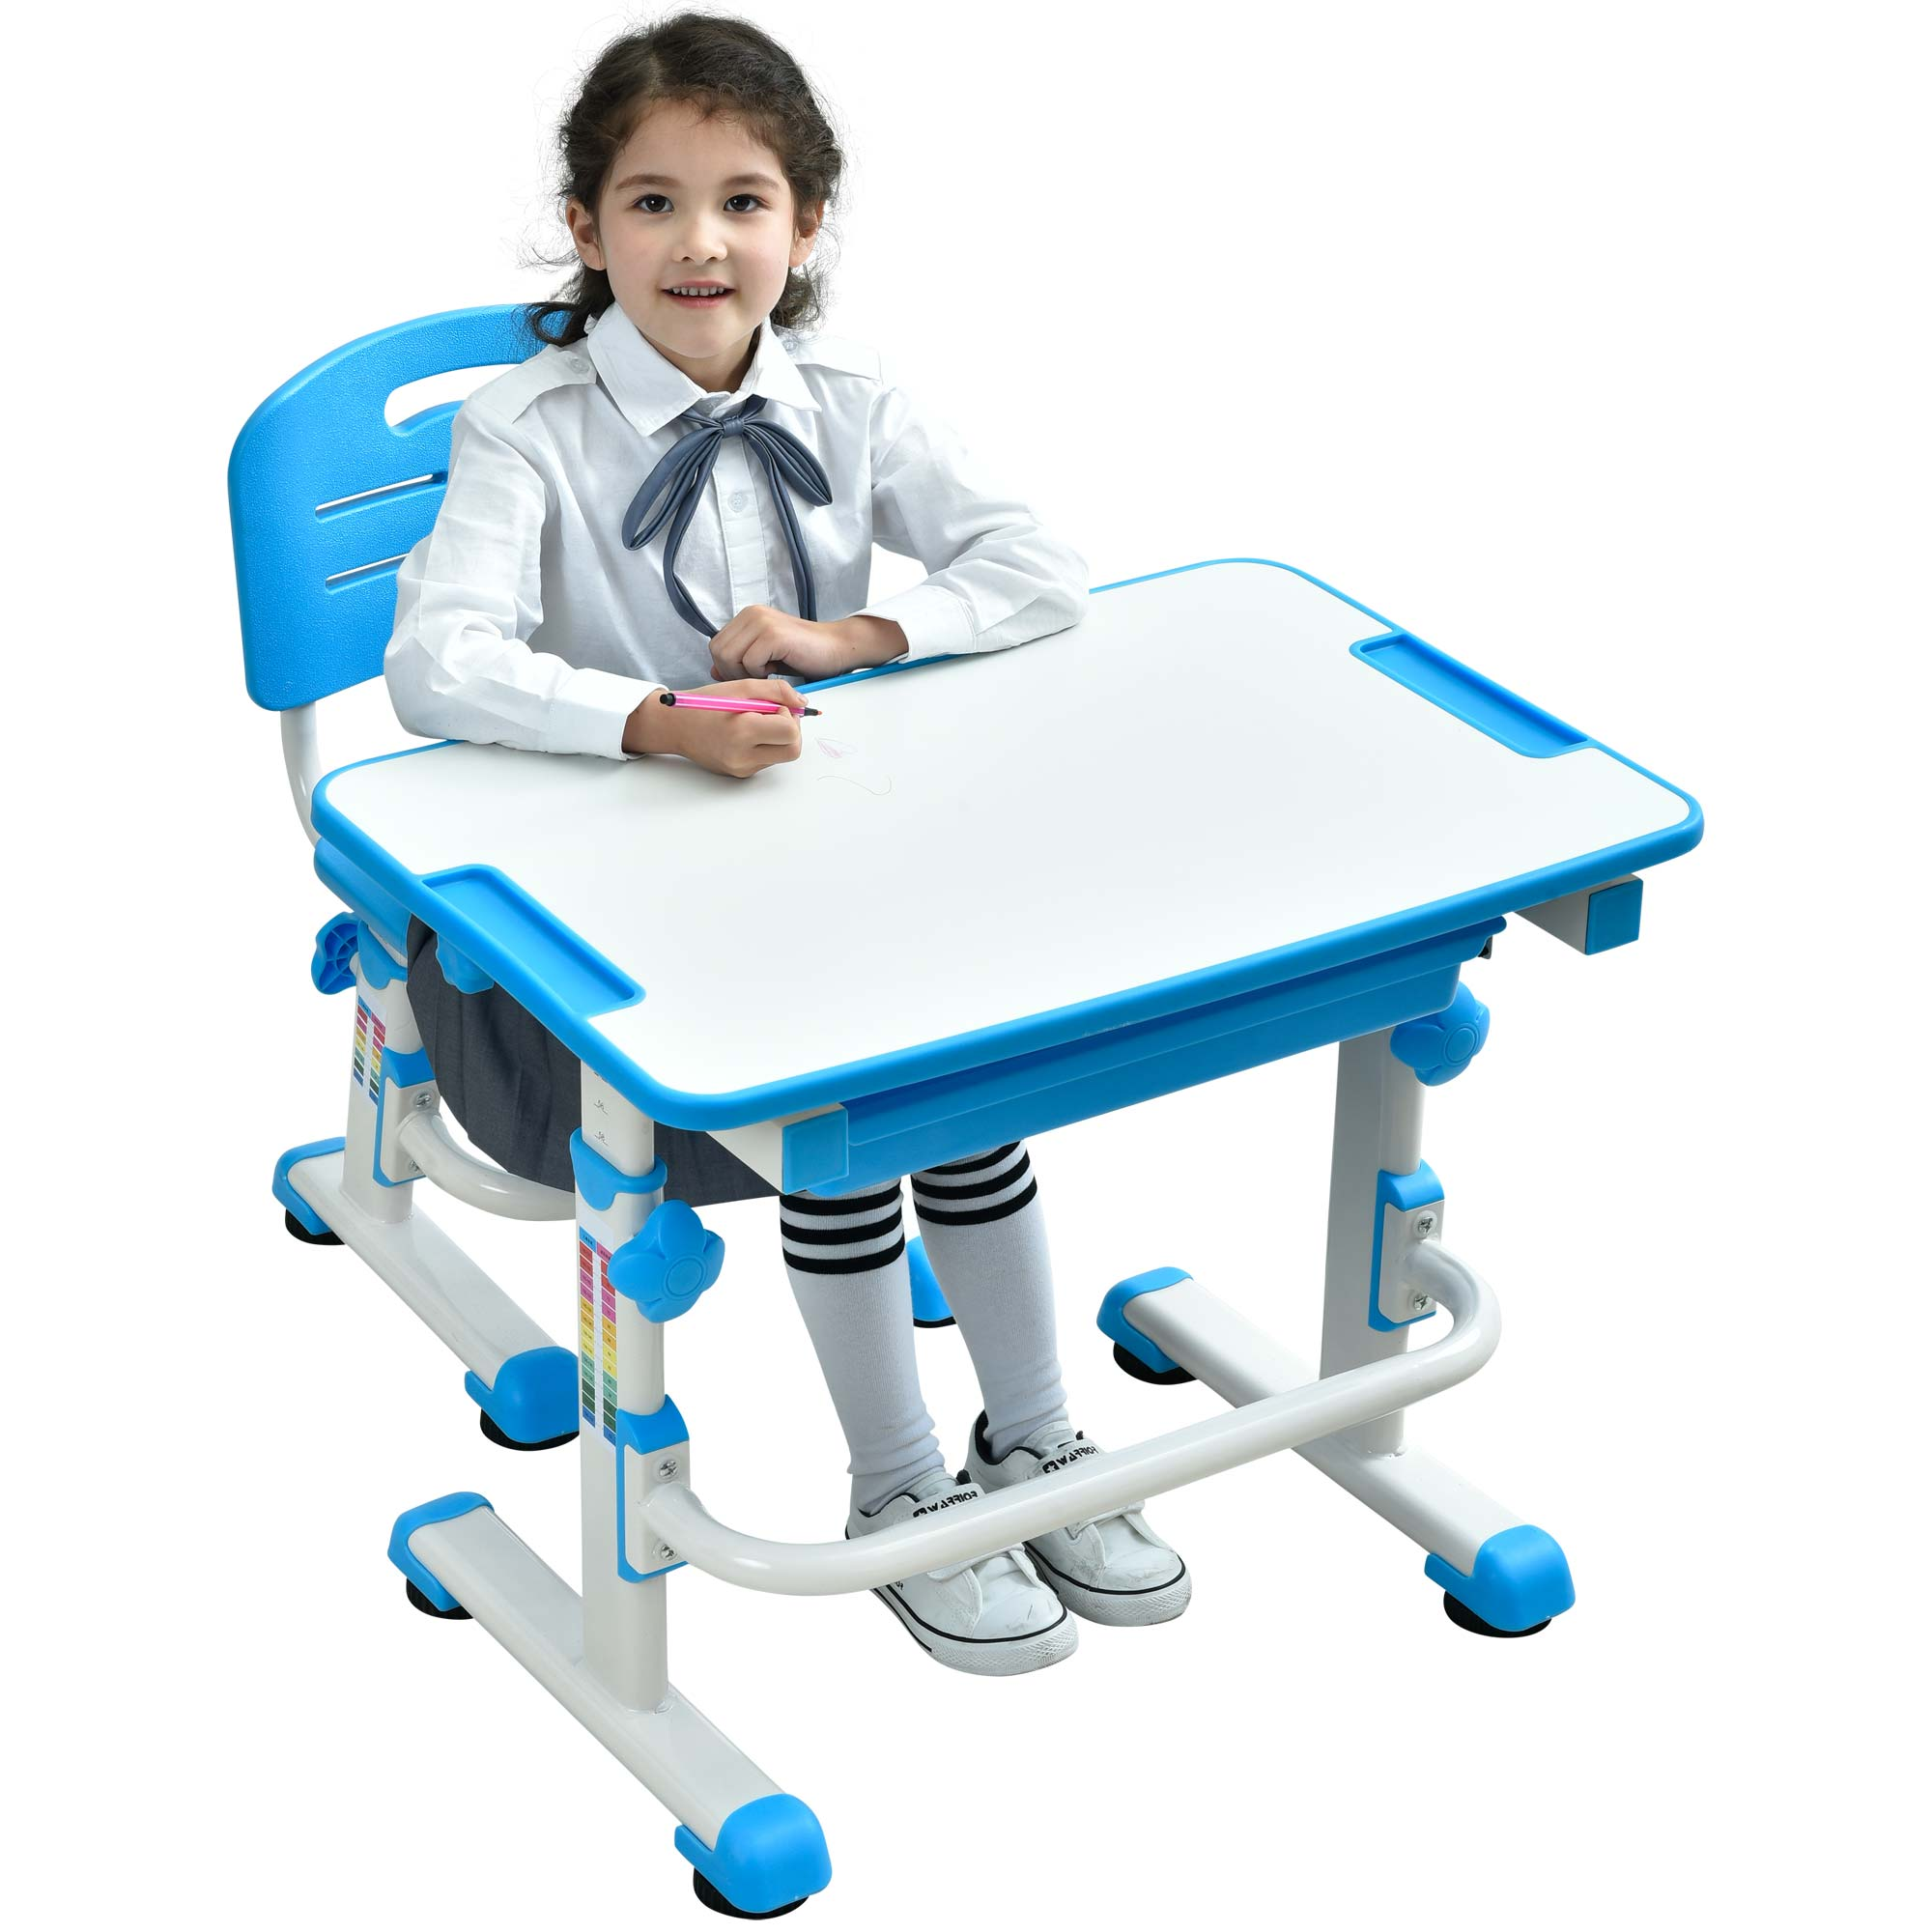 height-adjustable-kids-study-desk-ergonomic-table-for-children-mini-blue-desk-01